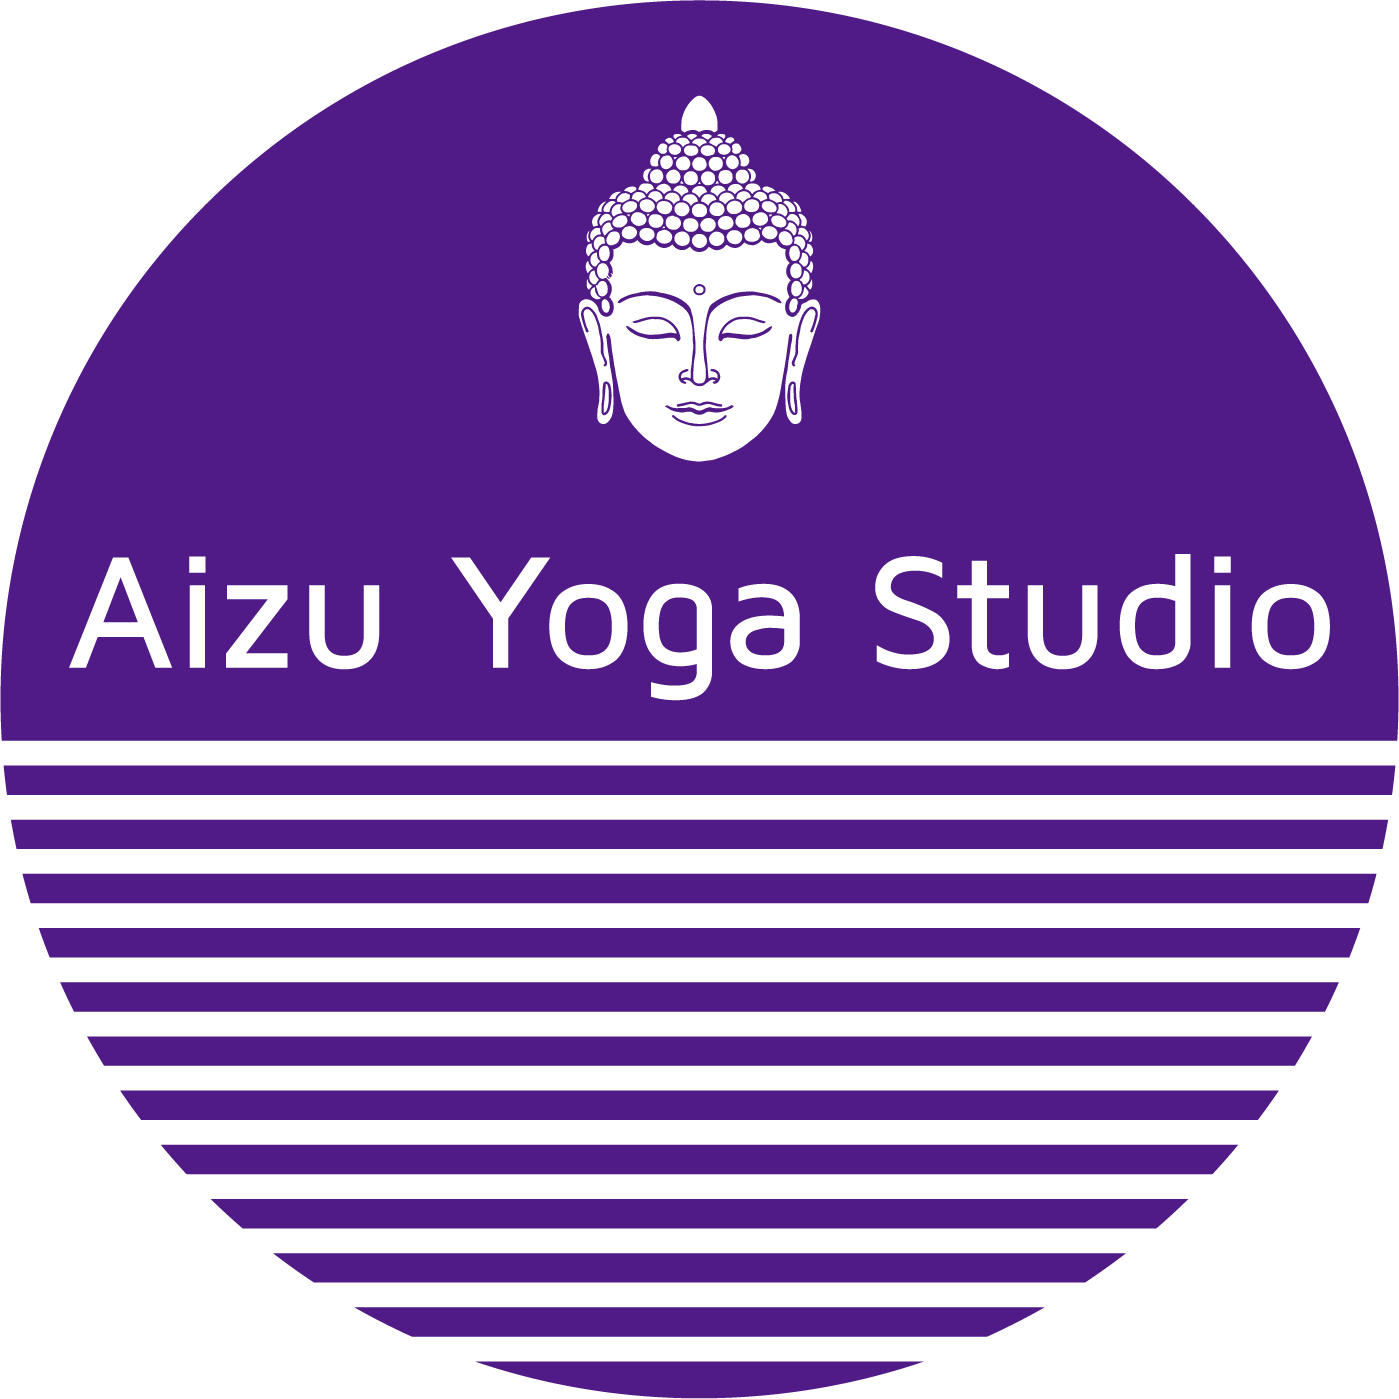 AIZU YOGA STUDIO